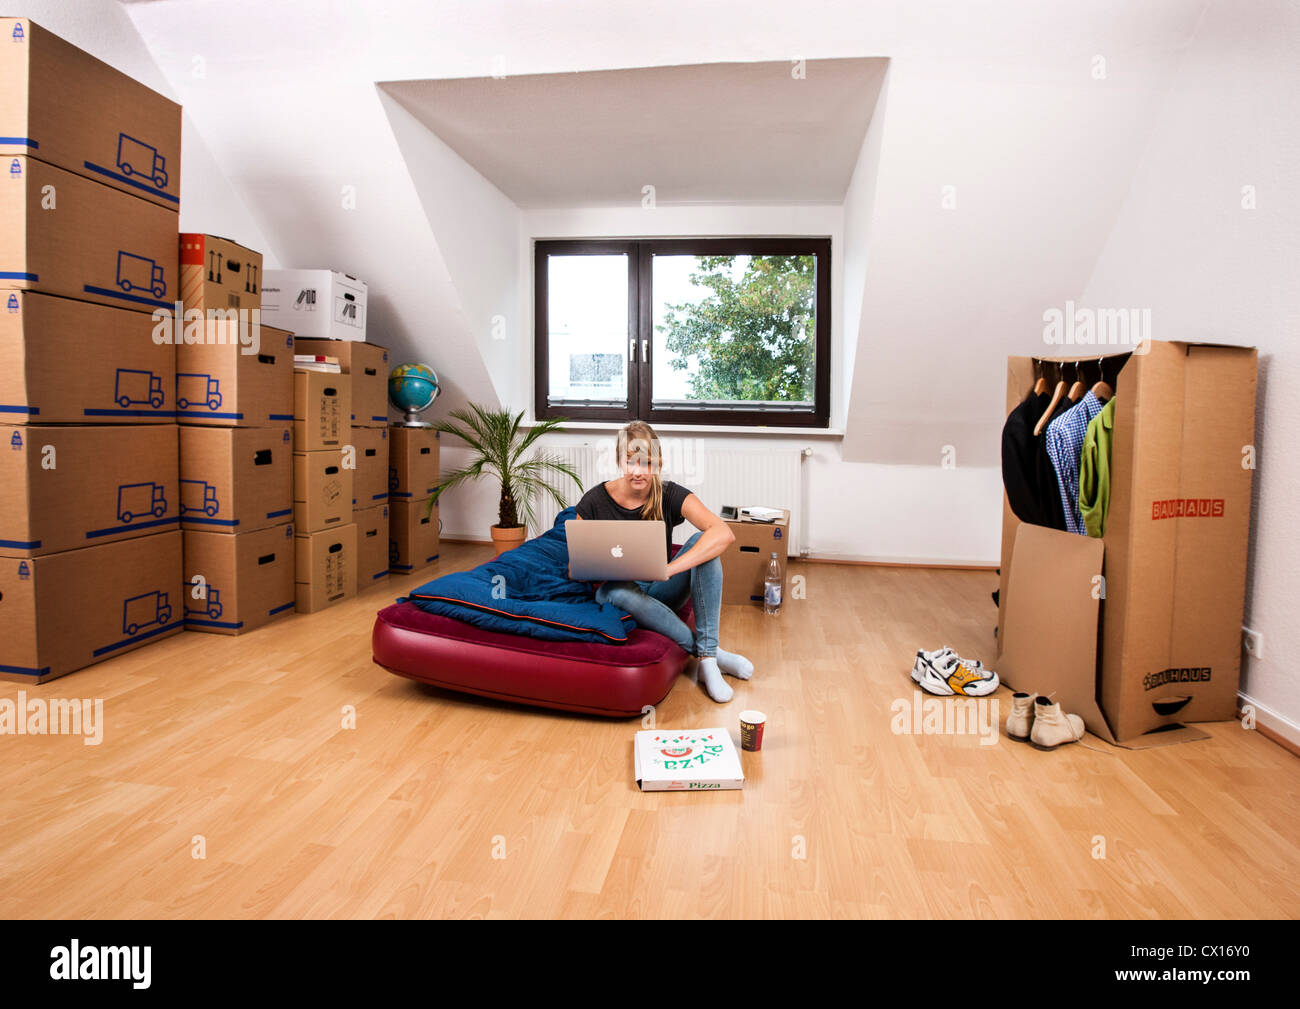 New apartment furniture Urban Young Woman In Her New Apartment Still No Furniture Living Out Of Moving Boxes Works With Her Laptop Computer Alamy Young Woman In Her New Apartment Still No Furniture Living Out Of